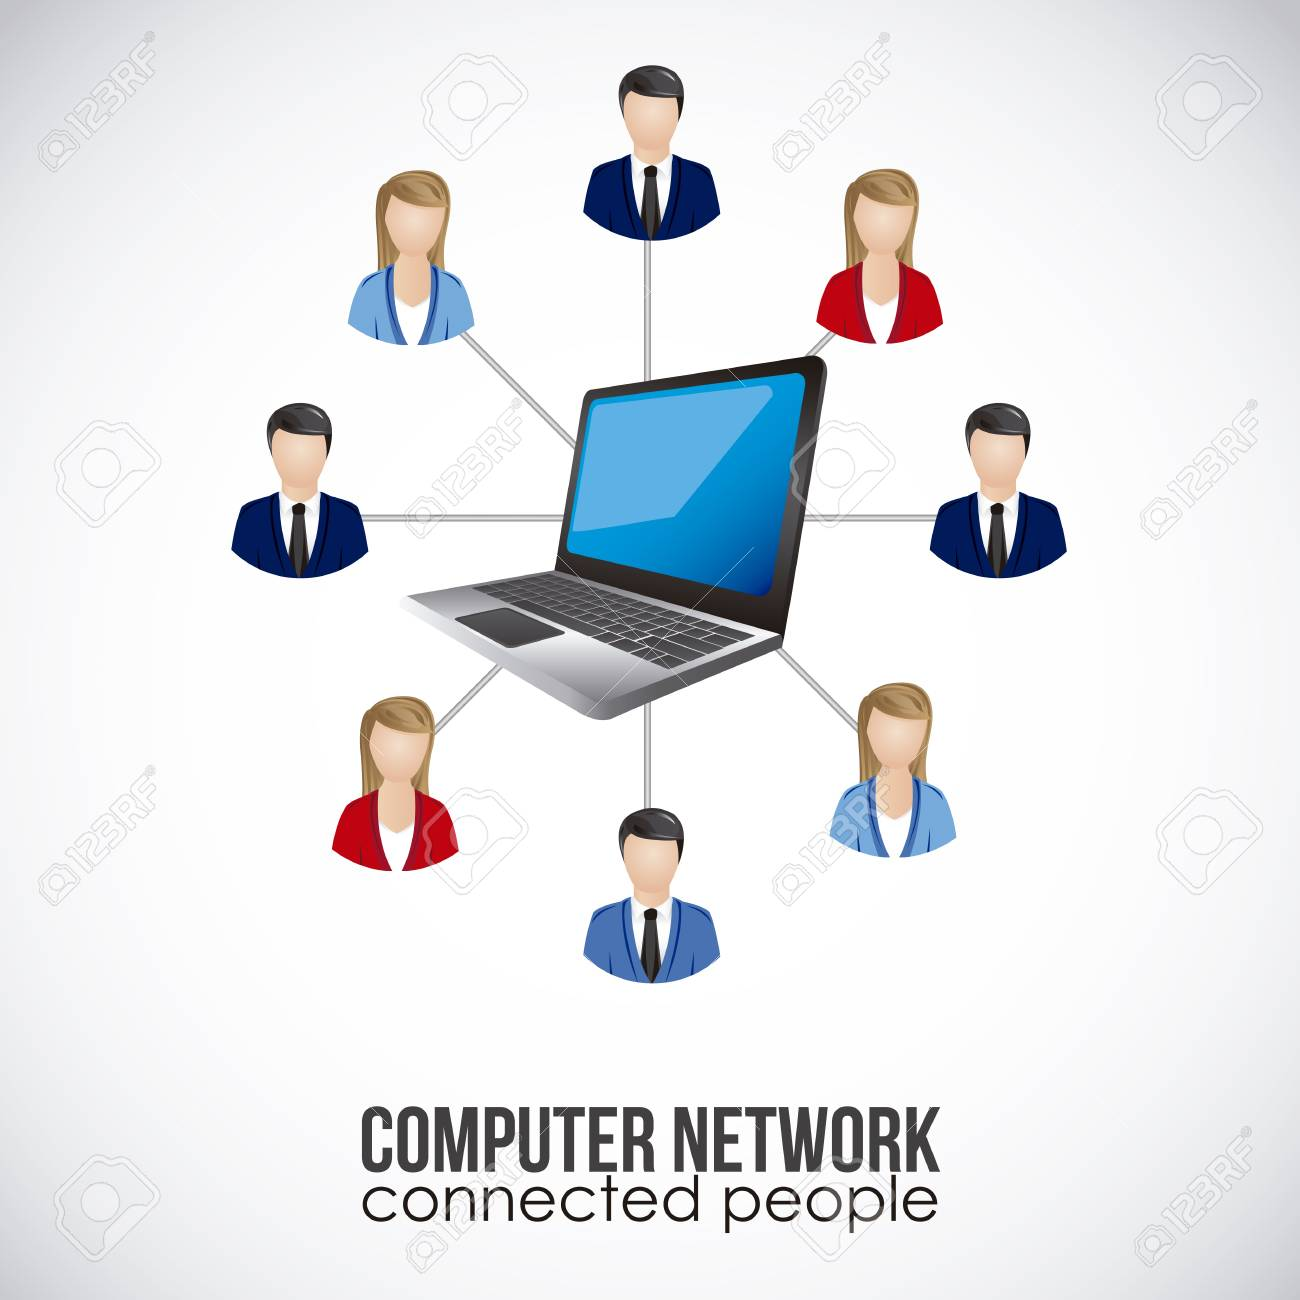 illustration of social networking and laptop connection, vector illustration Stock Vector - 19050484